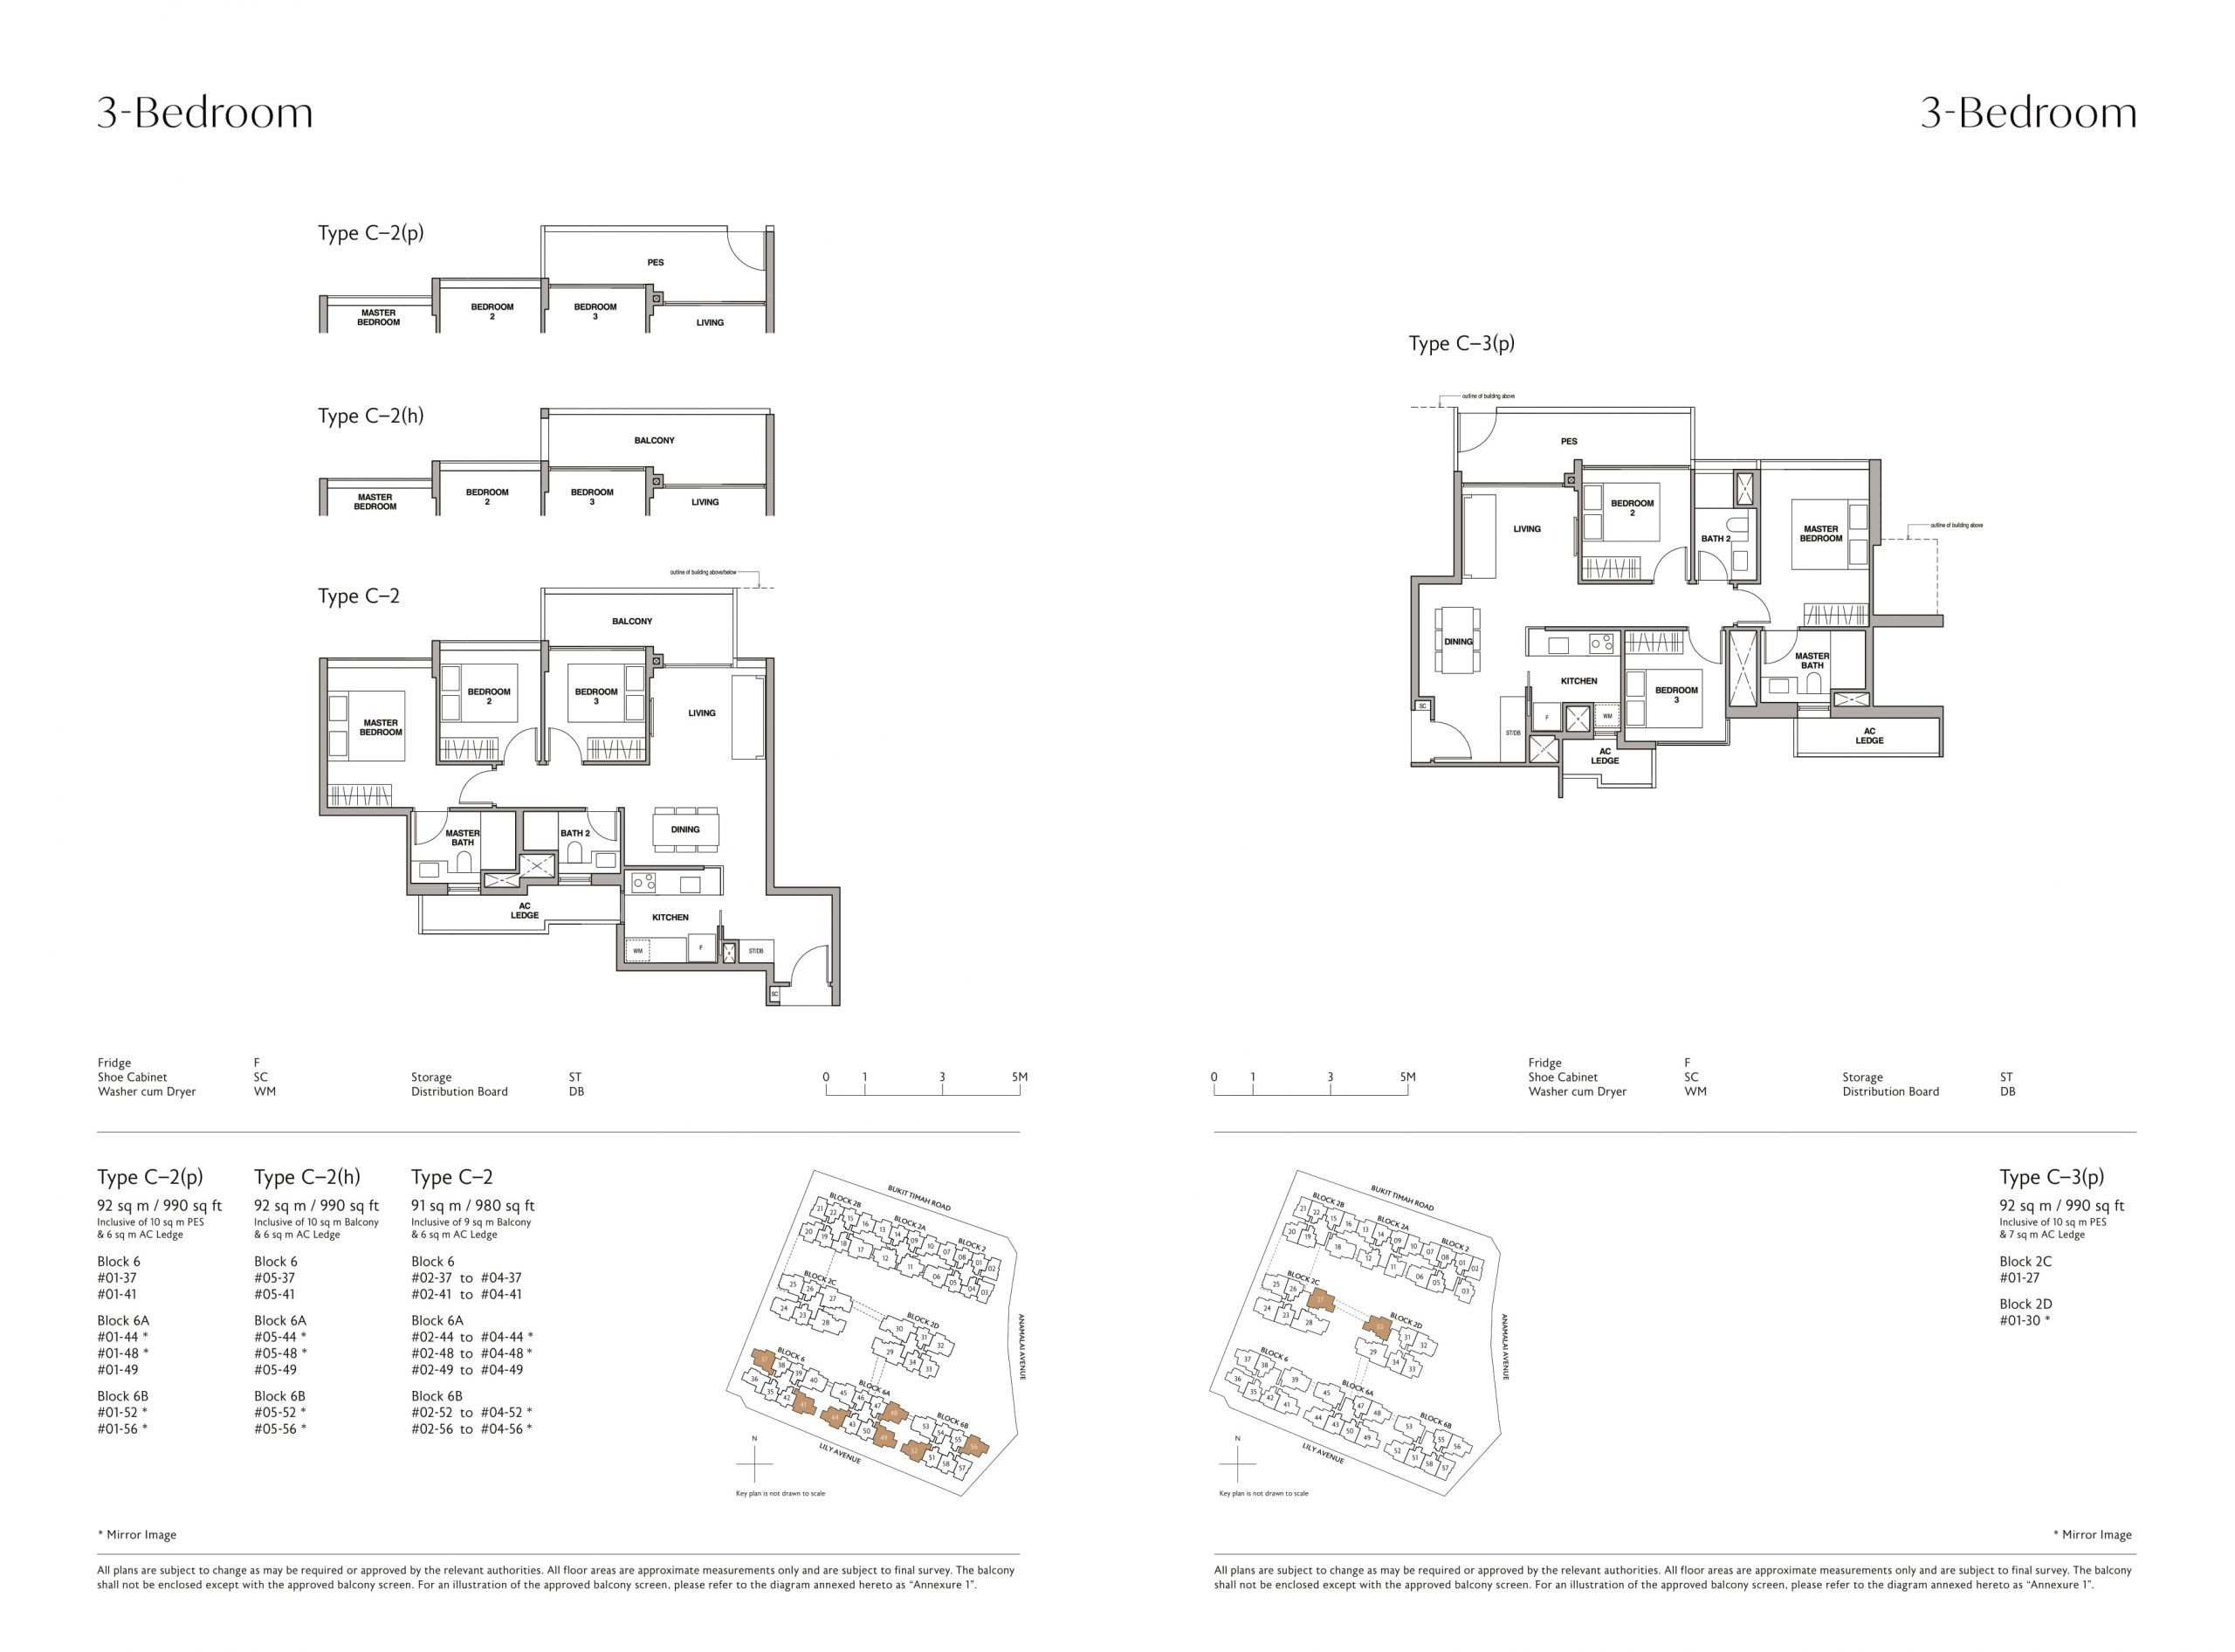 Royalgreen's three-bedroom & three-bedroom + study types